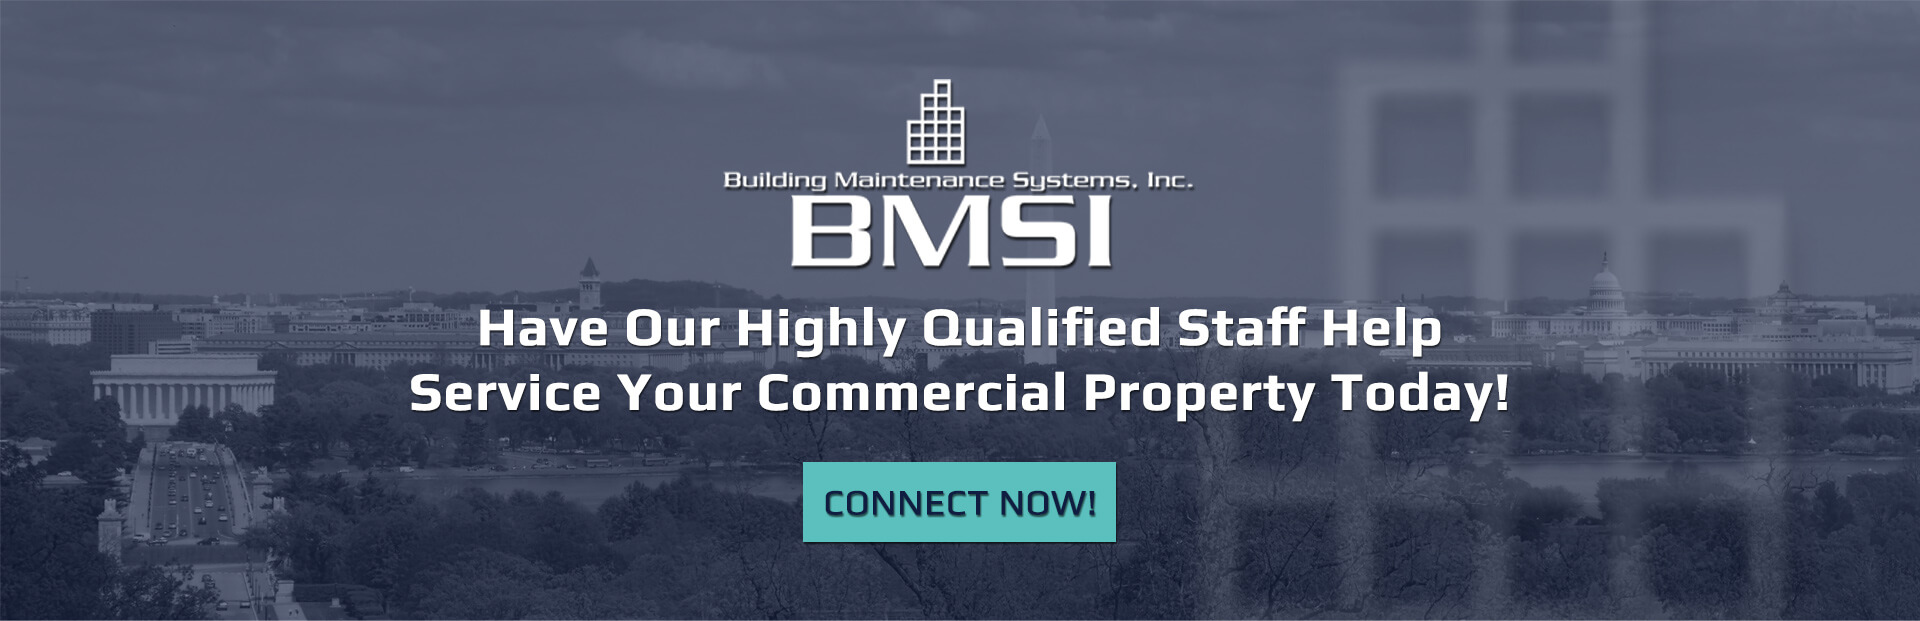 bmsi service your property slider